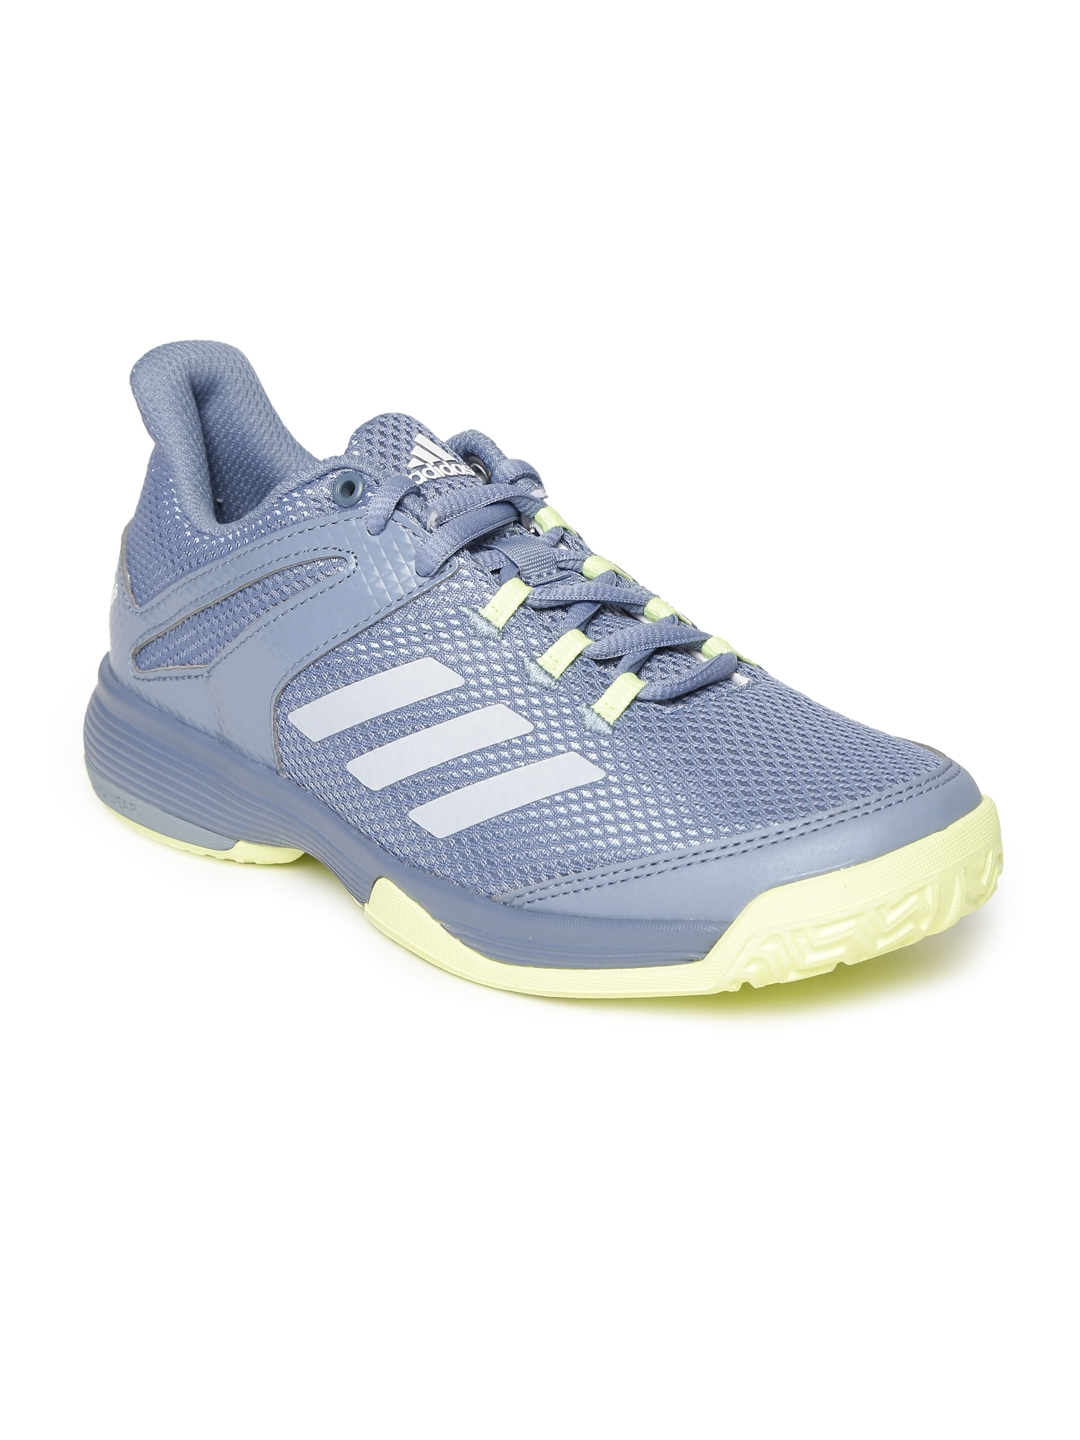 99598ffb61b9 Buy ADIDAS Kids Grey ADIZERO CLUB K Tennis Shoes - Sports Shoes for ...